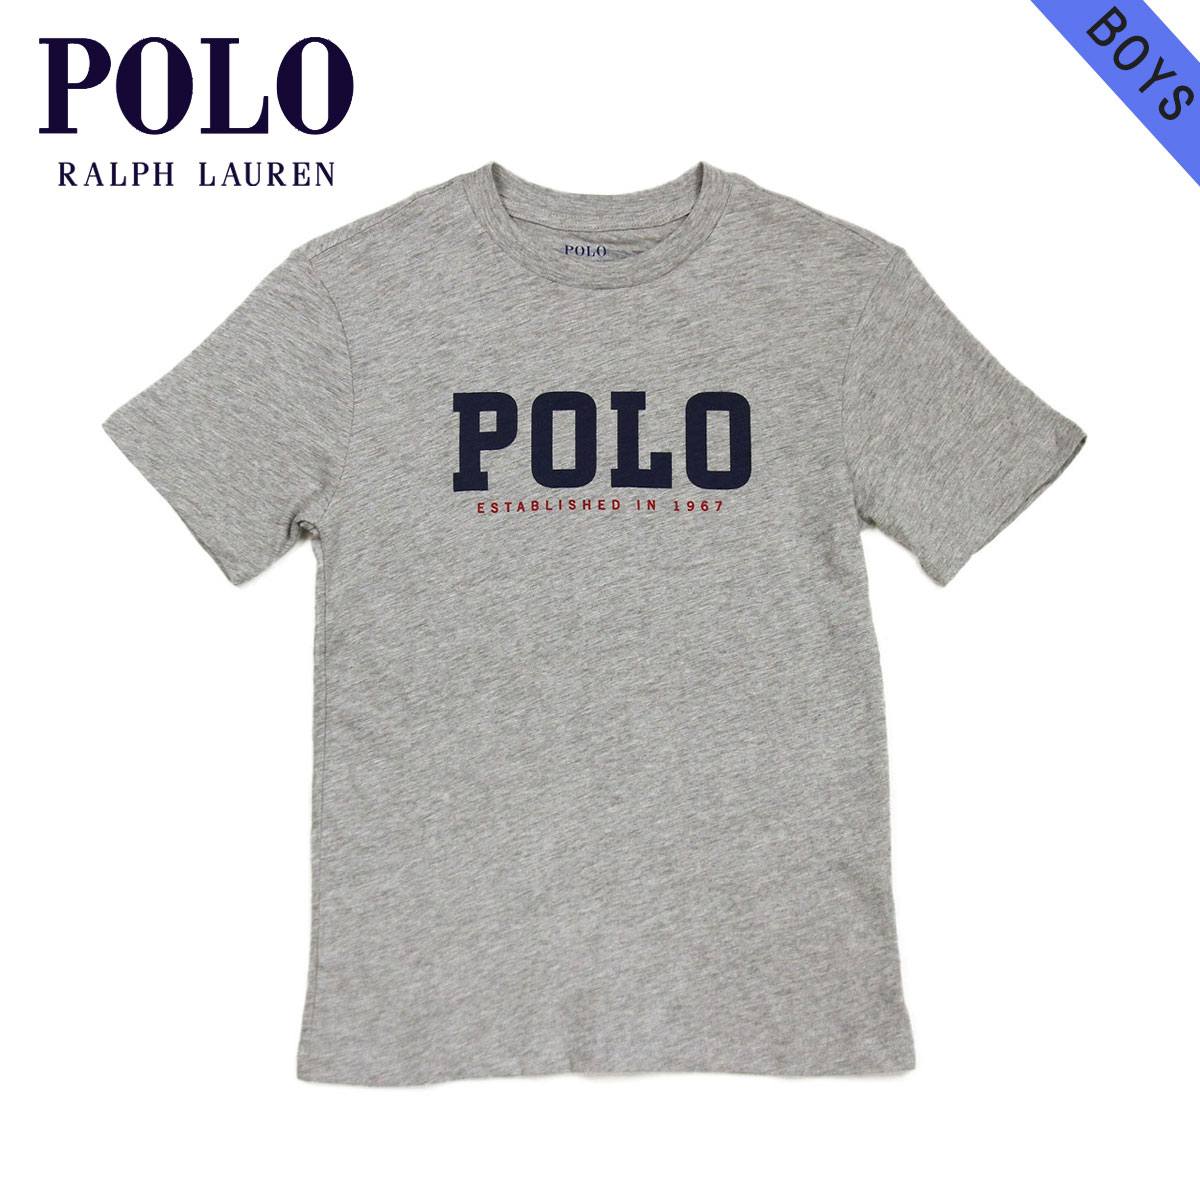 c53560cd6a Polo Ralph Lauren kids POLO RALPH LAUREN CHILDREN regular article  children's clothes Boys short sleeves logo T-shirt Slub Cotton Jersey  Graphic Tee